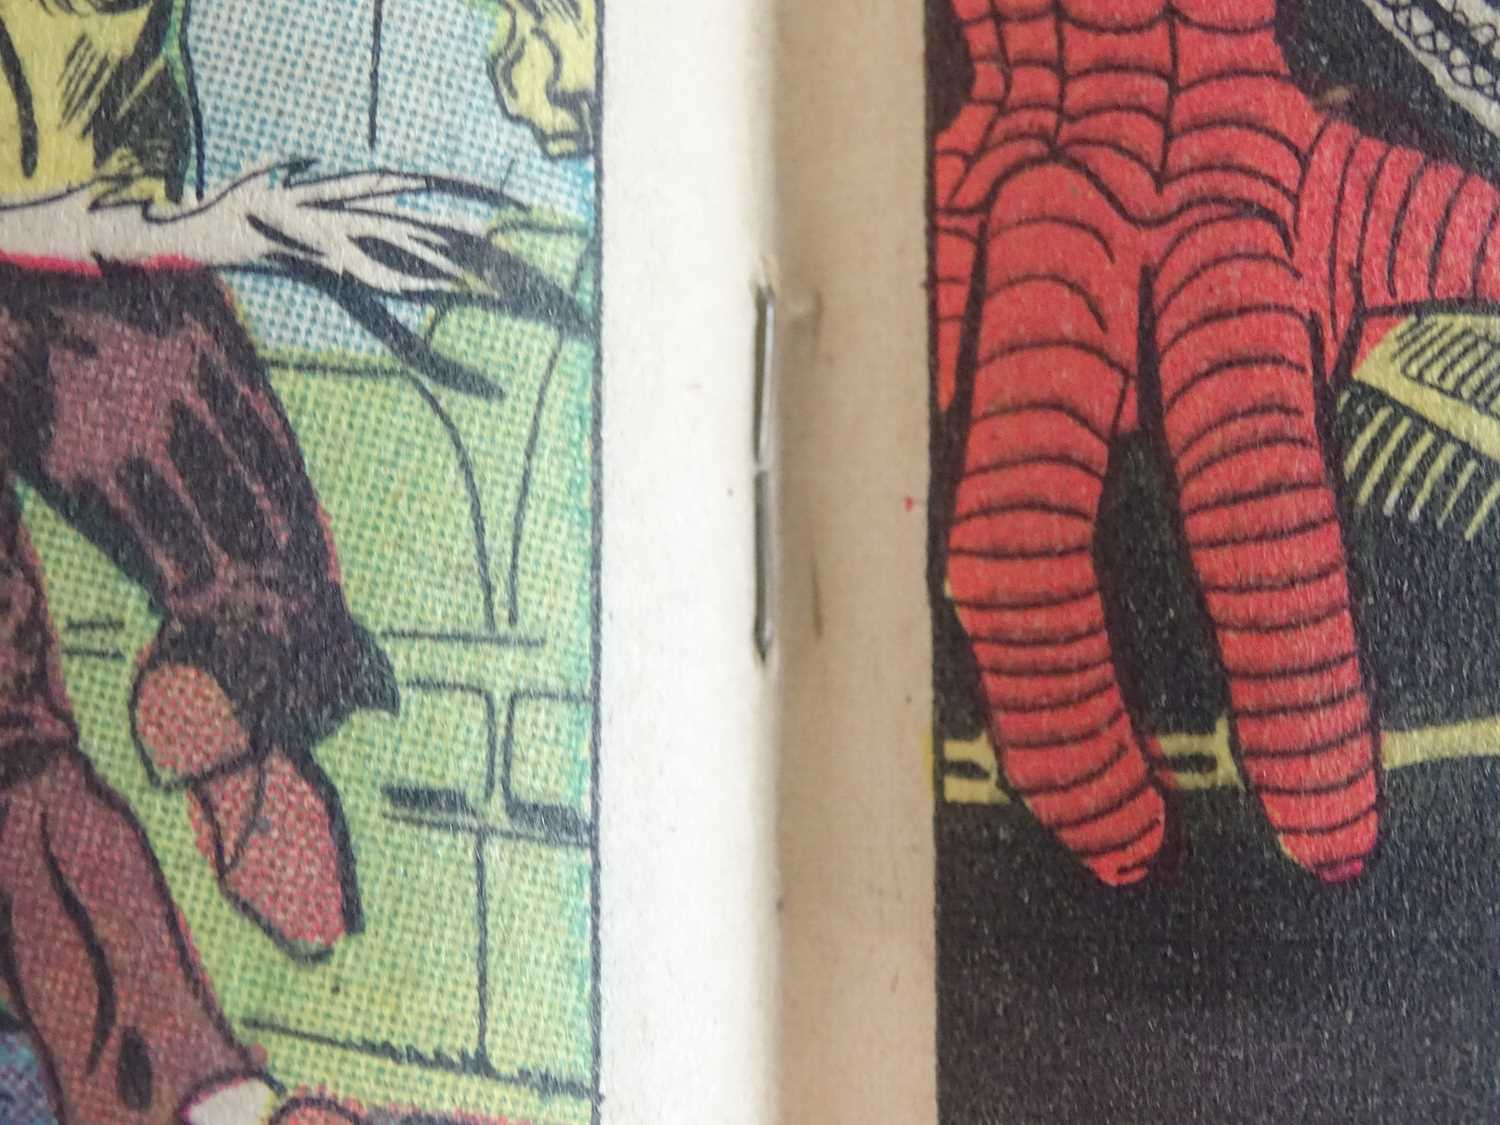 AMAZING SPIDER-MAN #28 - (1965 - MARVEL) - Origin and First appearance of Molten Man + Peter - Image 6 of 9